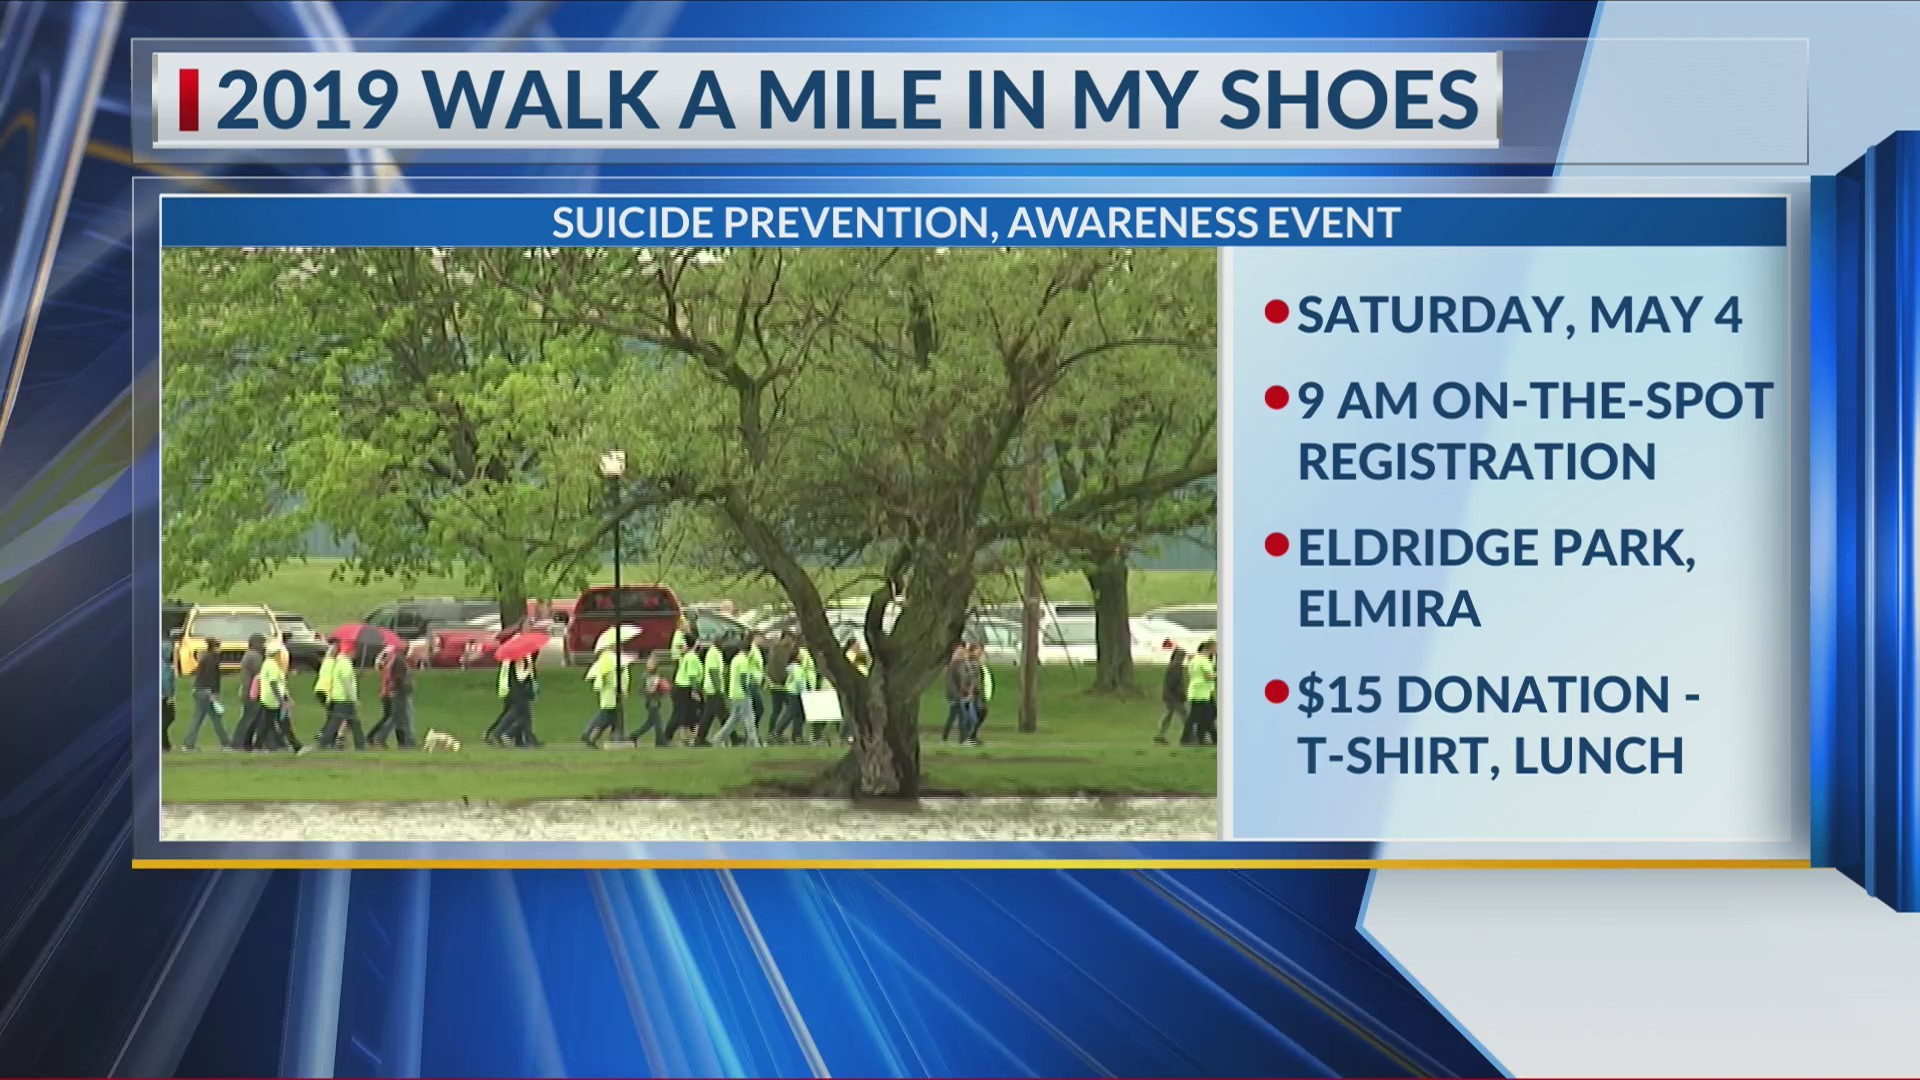 2019_Walk_a_Mile_in_My_Shoes_to_be_held__9_20190425170323